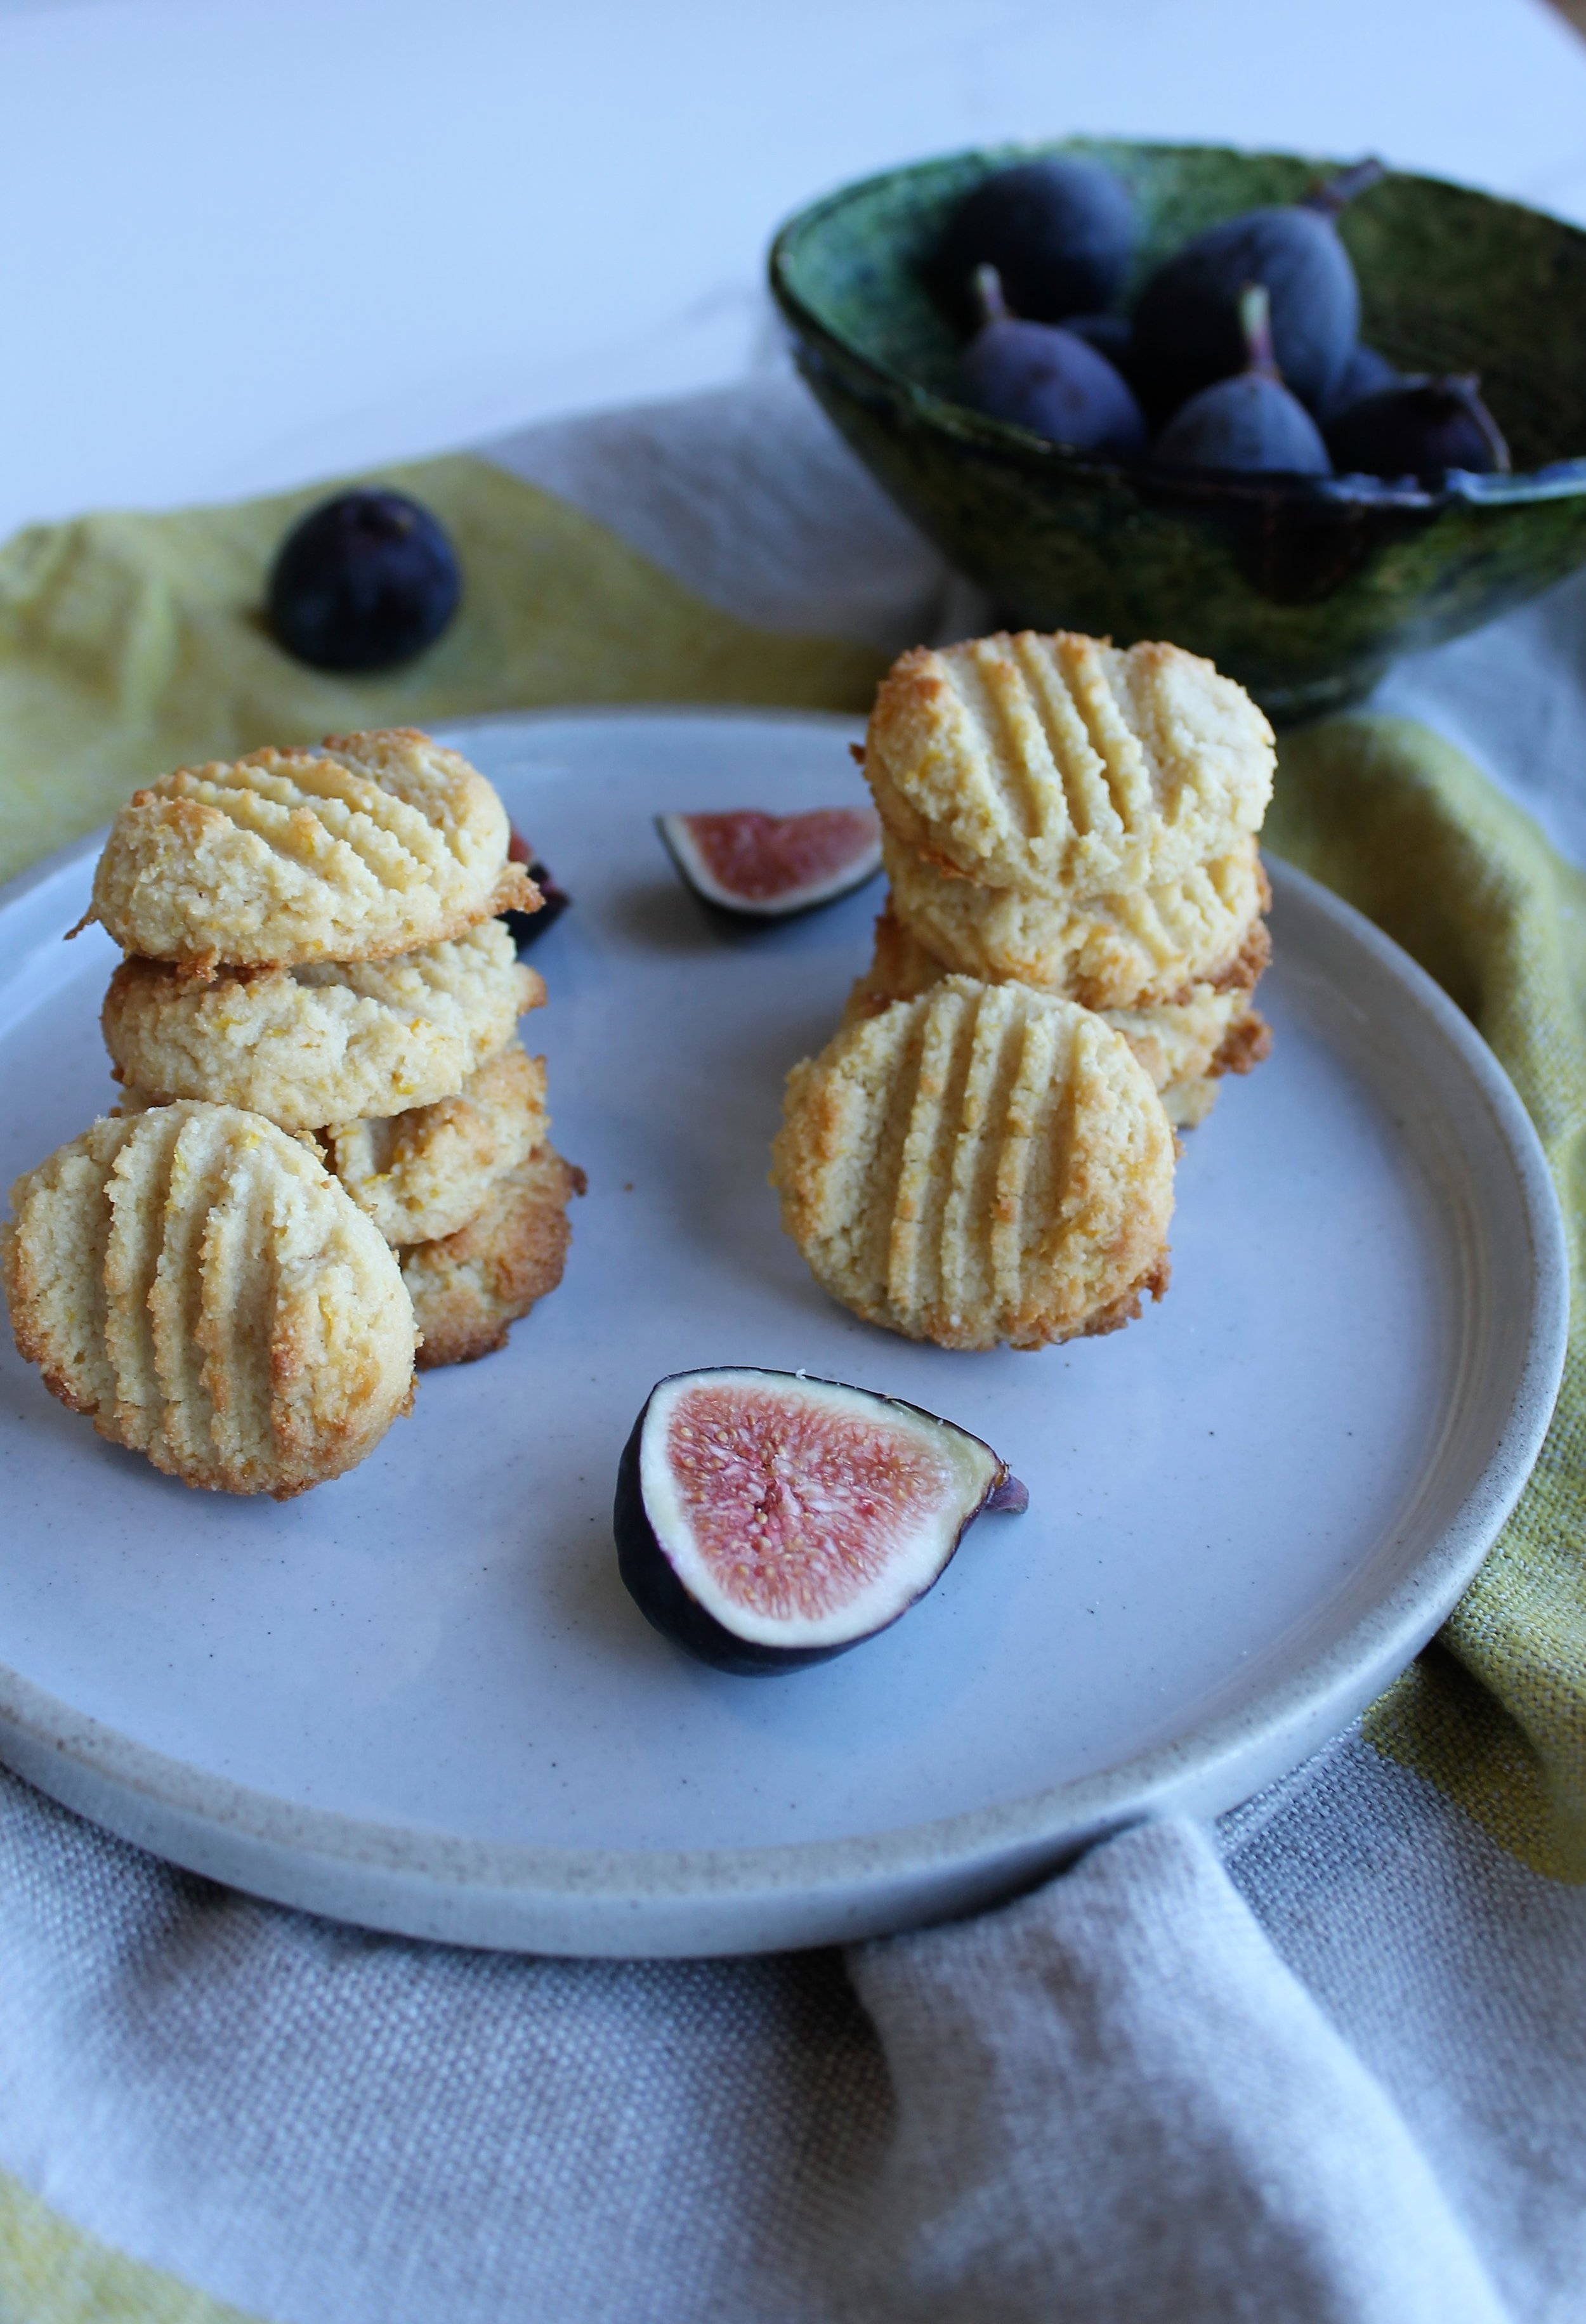 Meyer_Lemon_Shortbread_Cookies.JPG